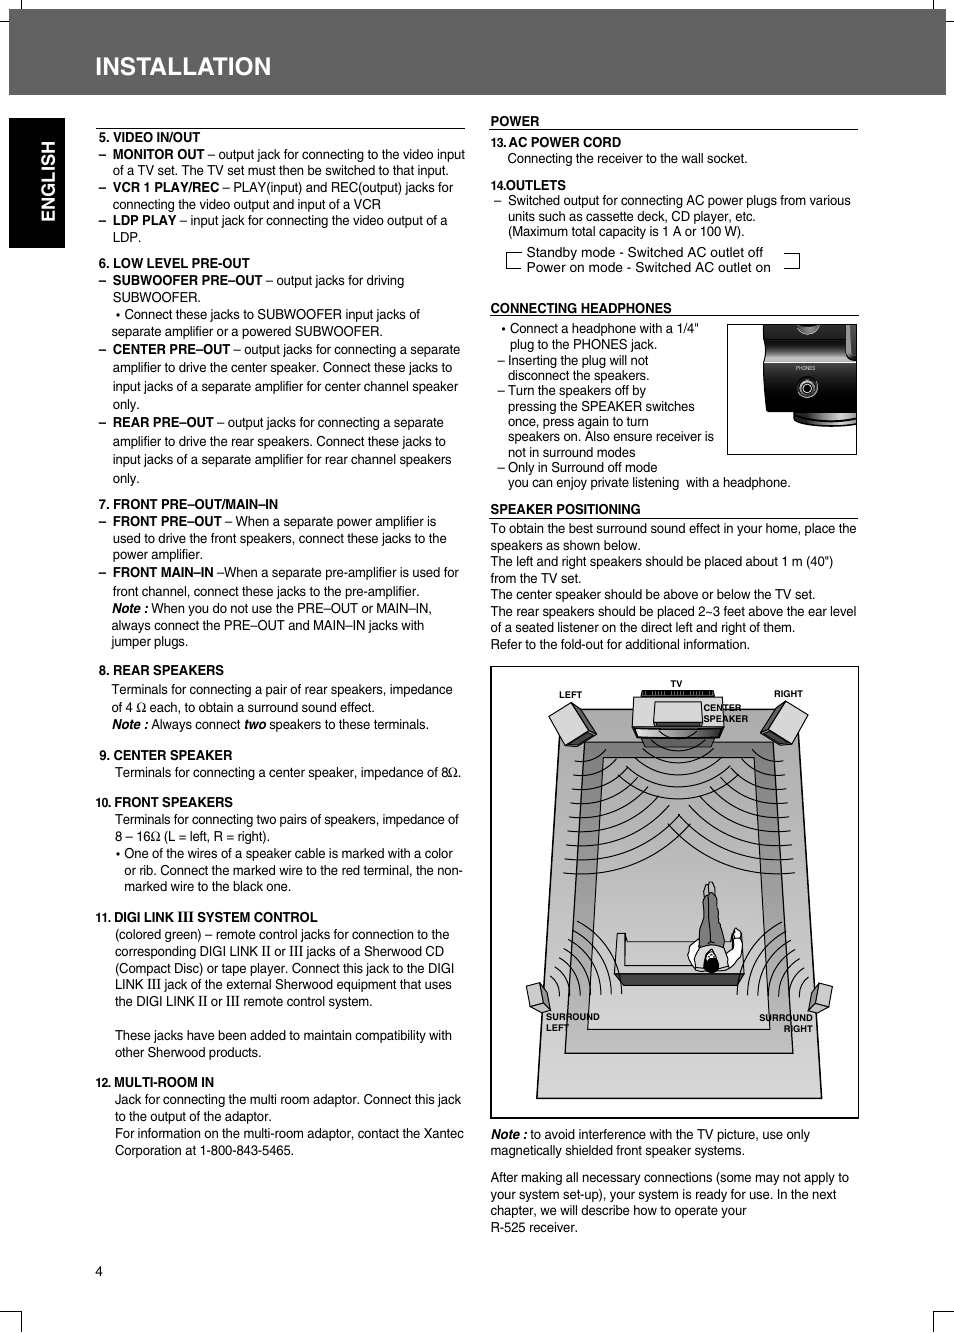 Installation English Sherwood R 525 User Manual Page 4 13 Multi Room Stereo Wiring Diagram